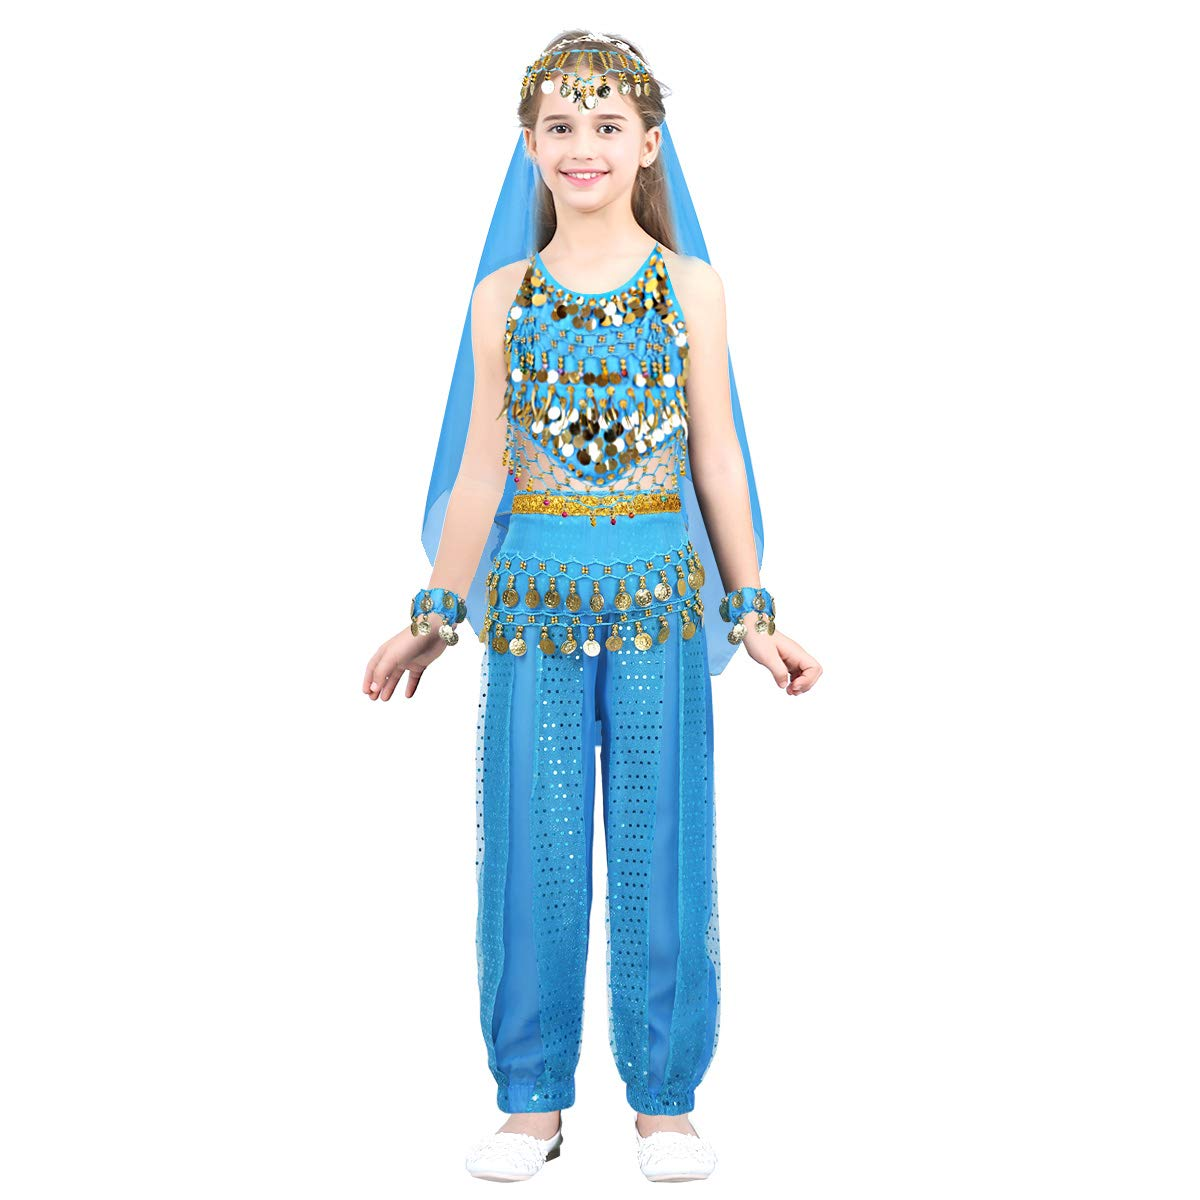 CHICTRY Kids Girls Sparkly Sequins Belly Dancing Costumes with Head Veil Waist Chain and Bracelets set